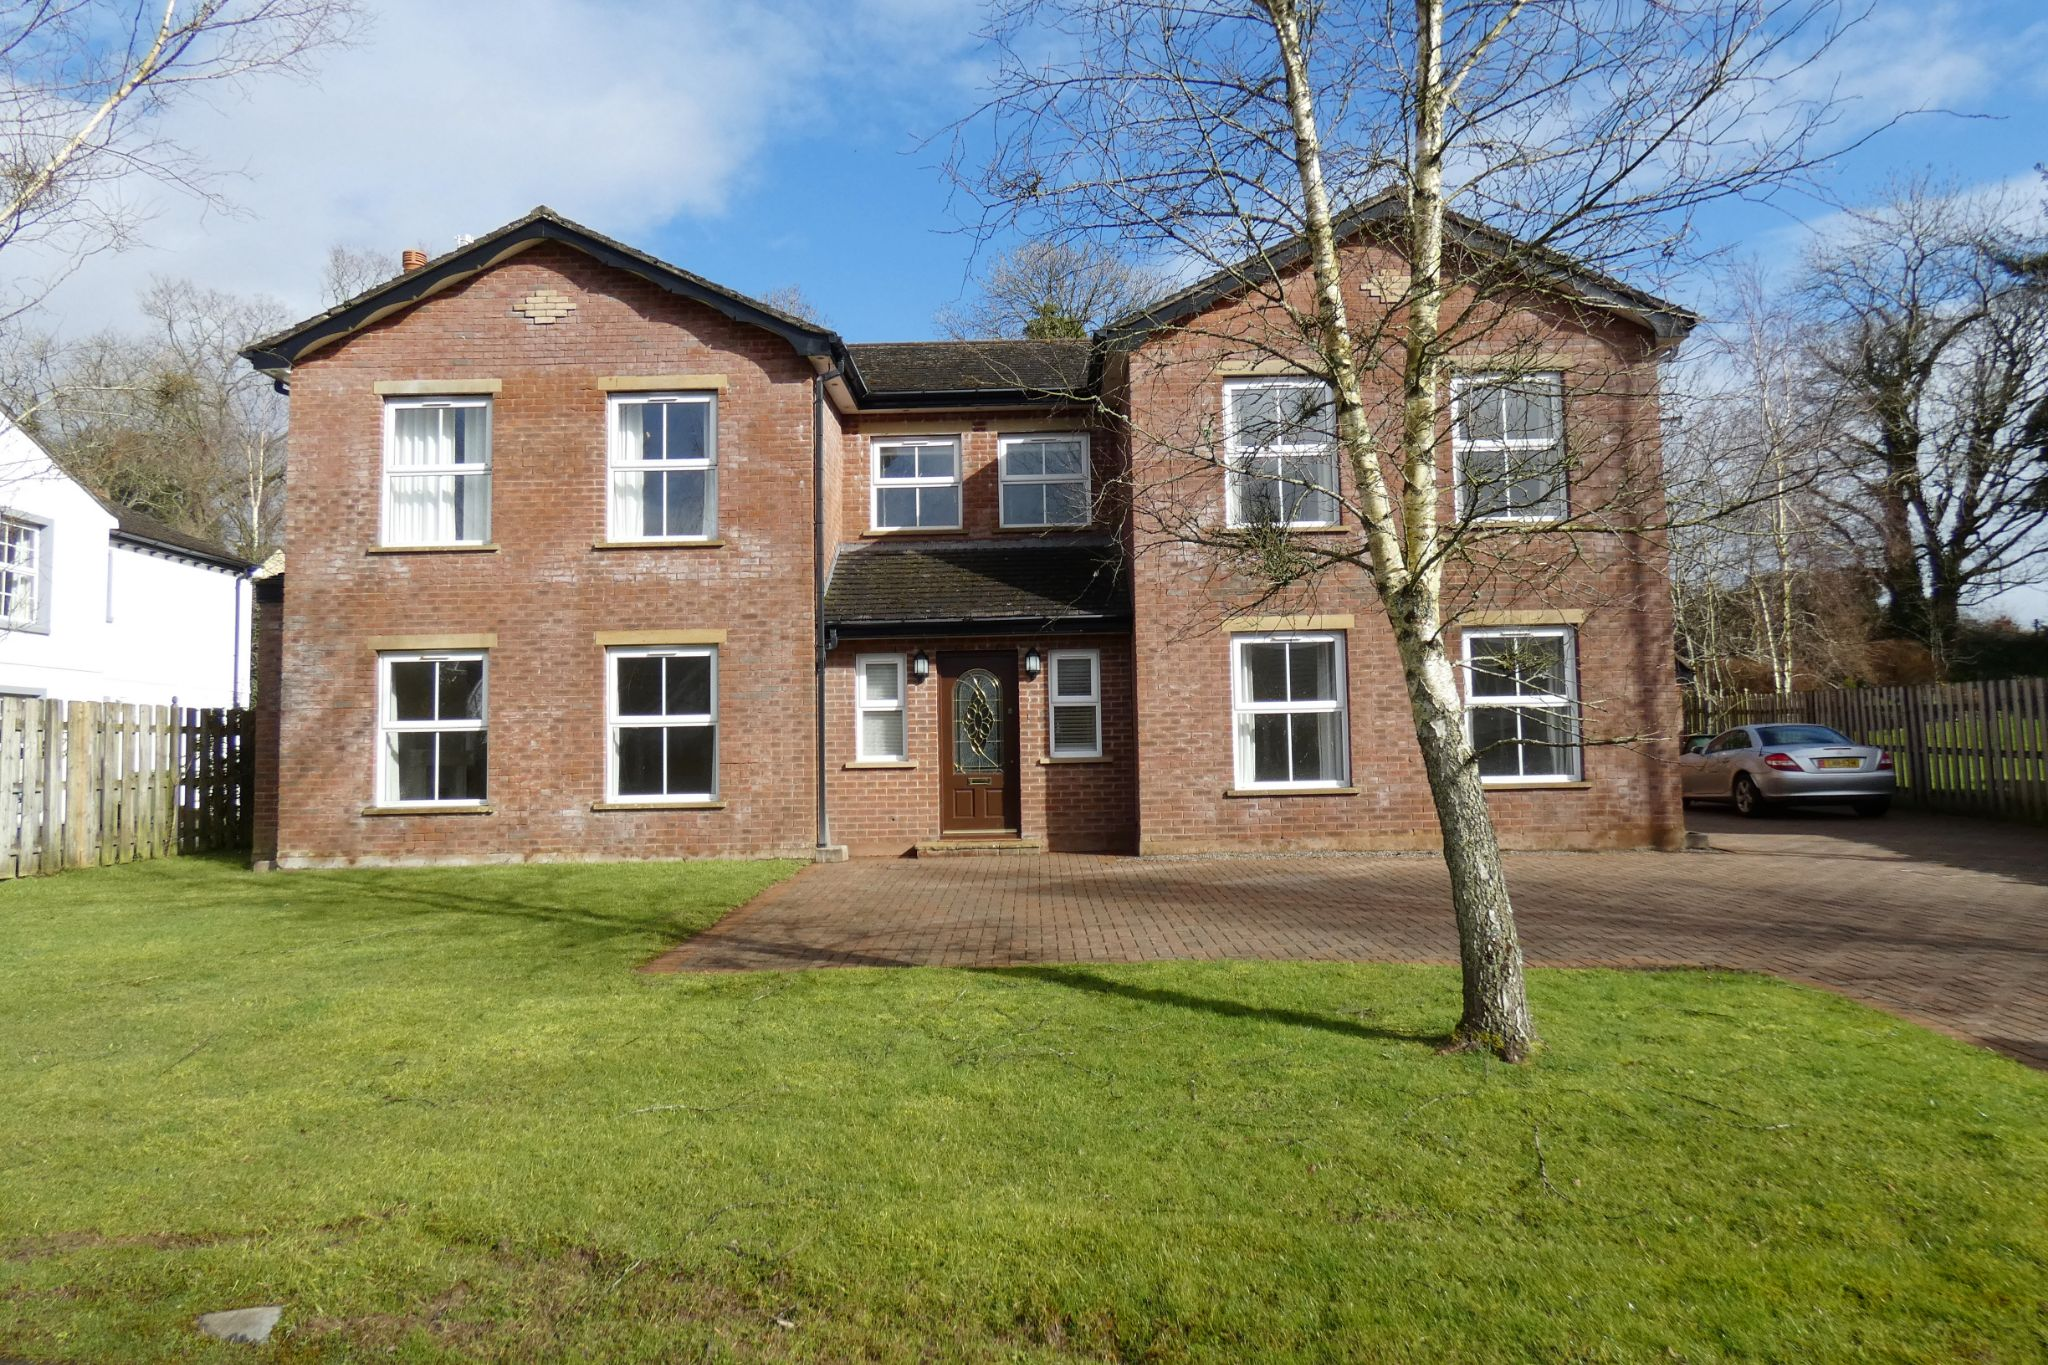 5 bedroom detached house To Let in Glen Vine - Photograph 1